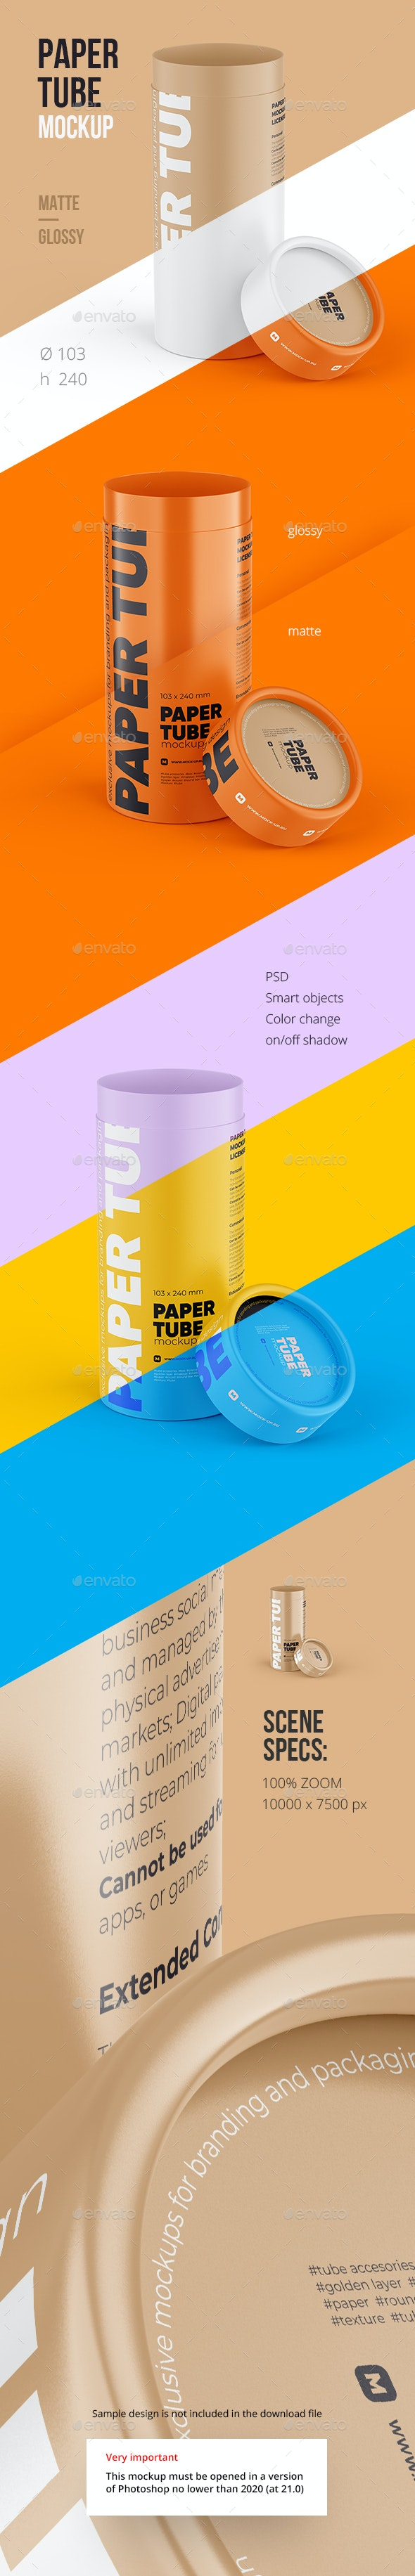 Opened Paper Tube Mockup 103x240mm - Food and Drink Packaging